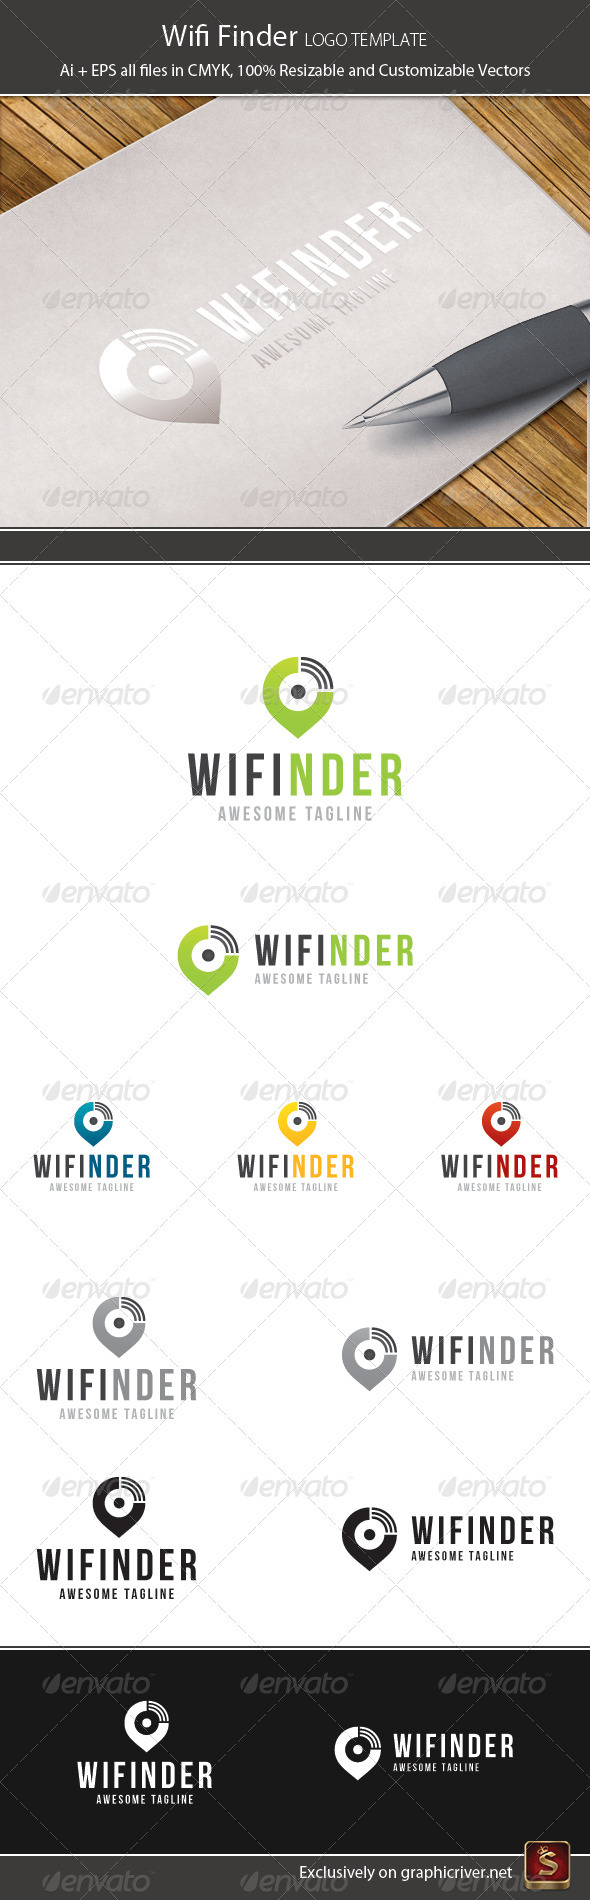 Wifi Finder Logo Template - Vector Abstract